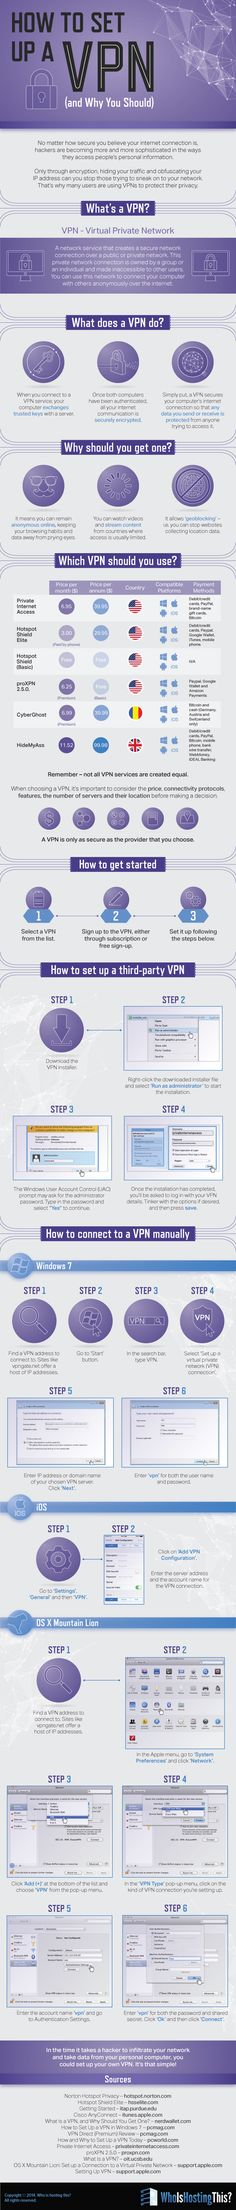 How-to-set-up-a-VPN